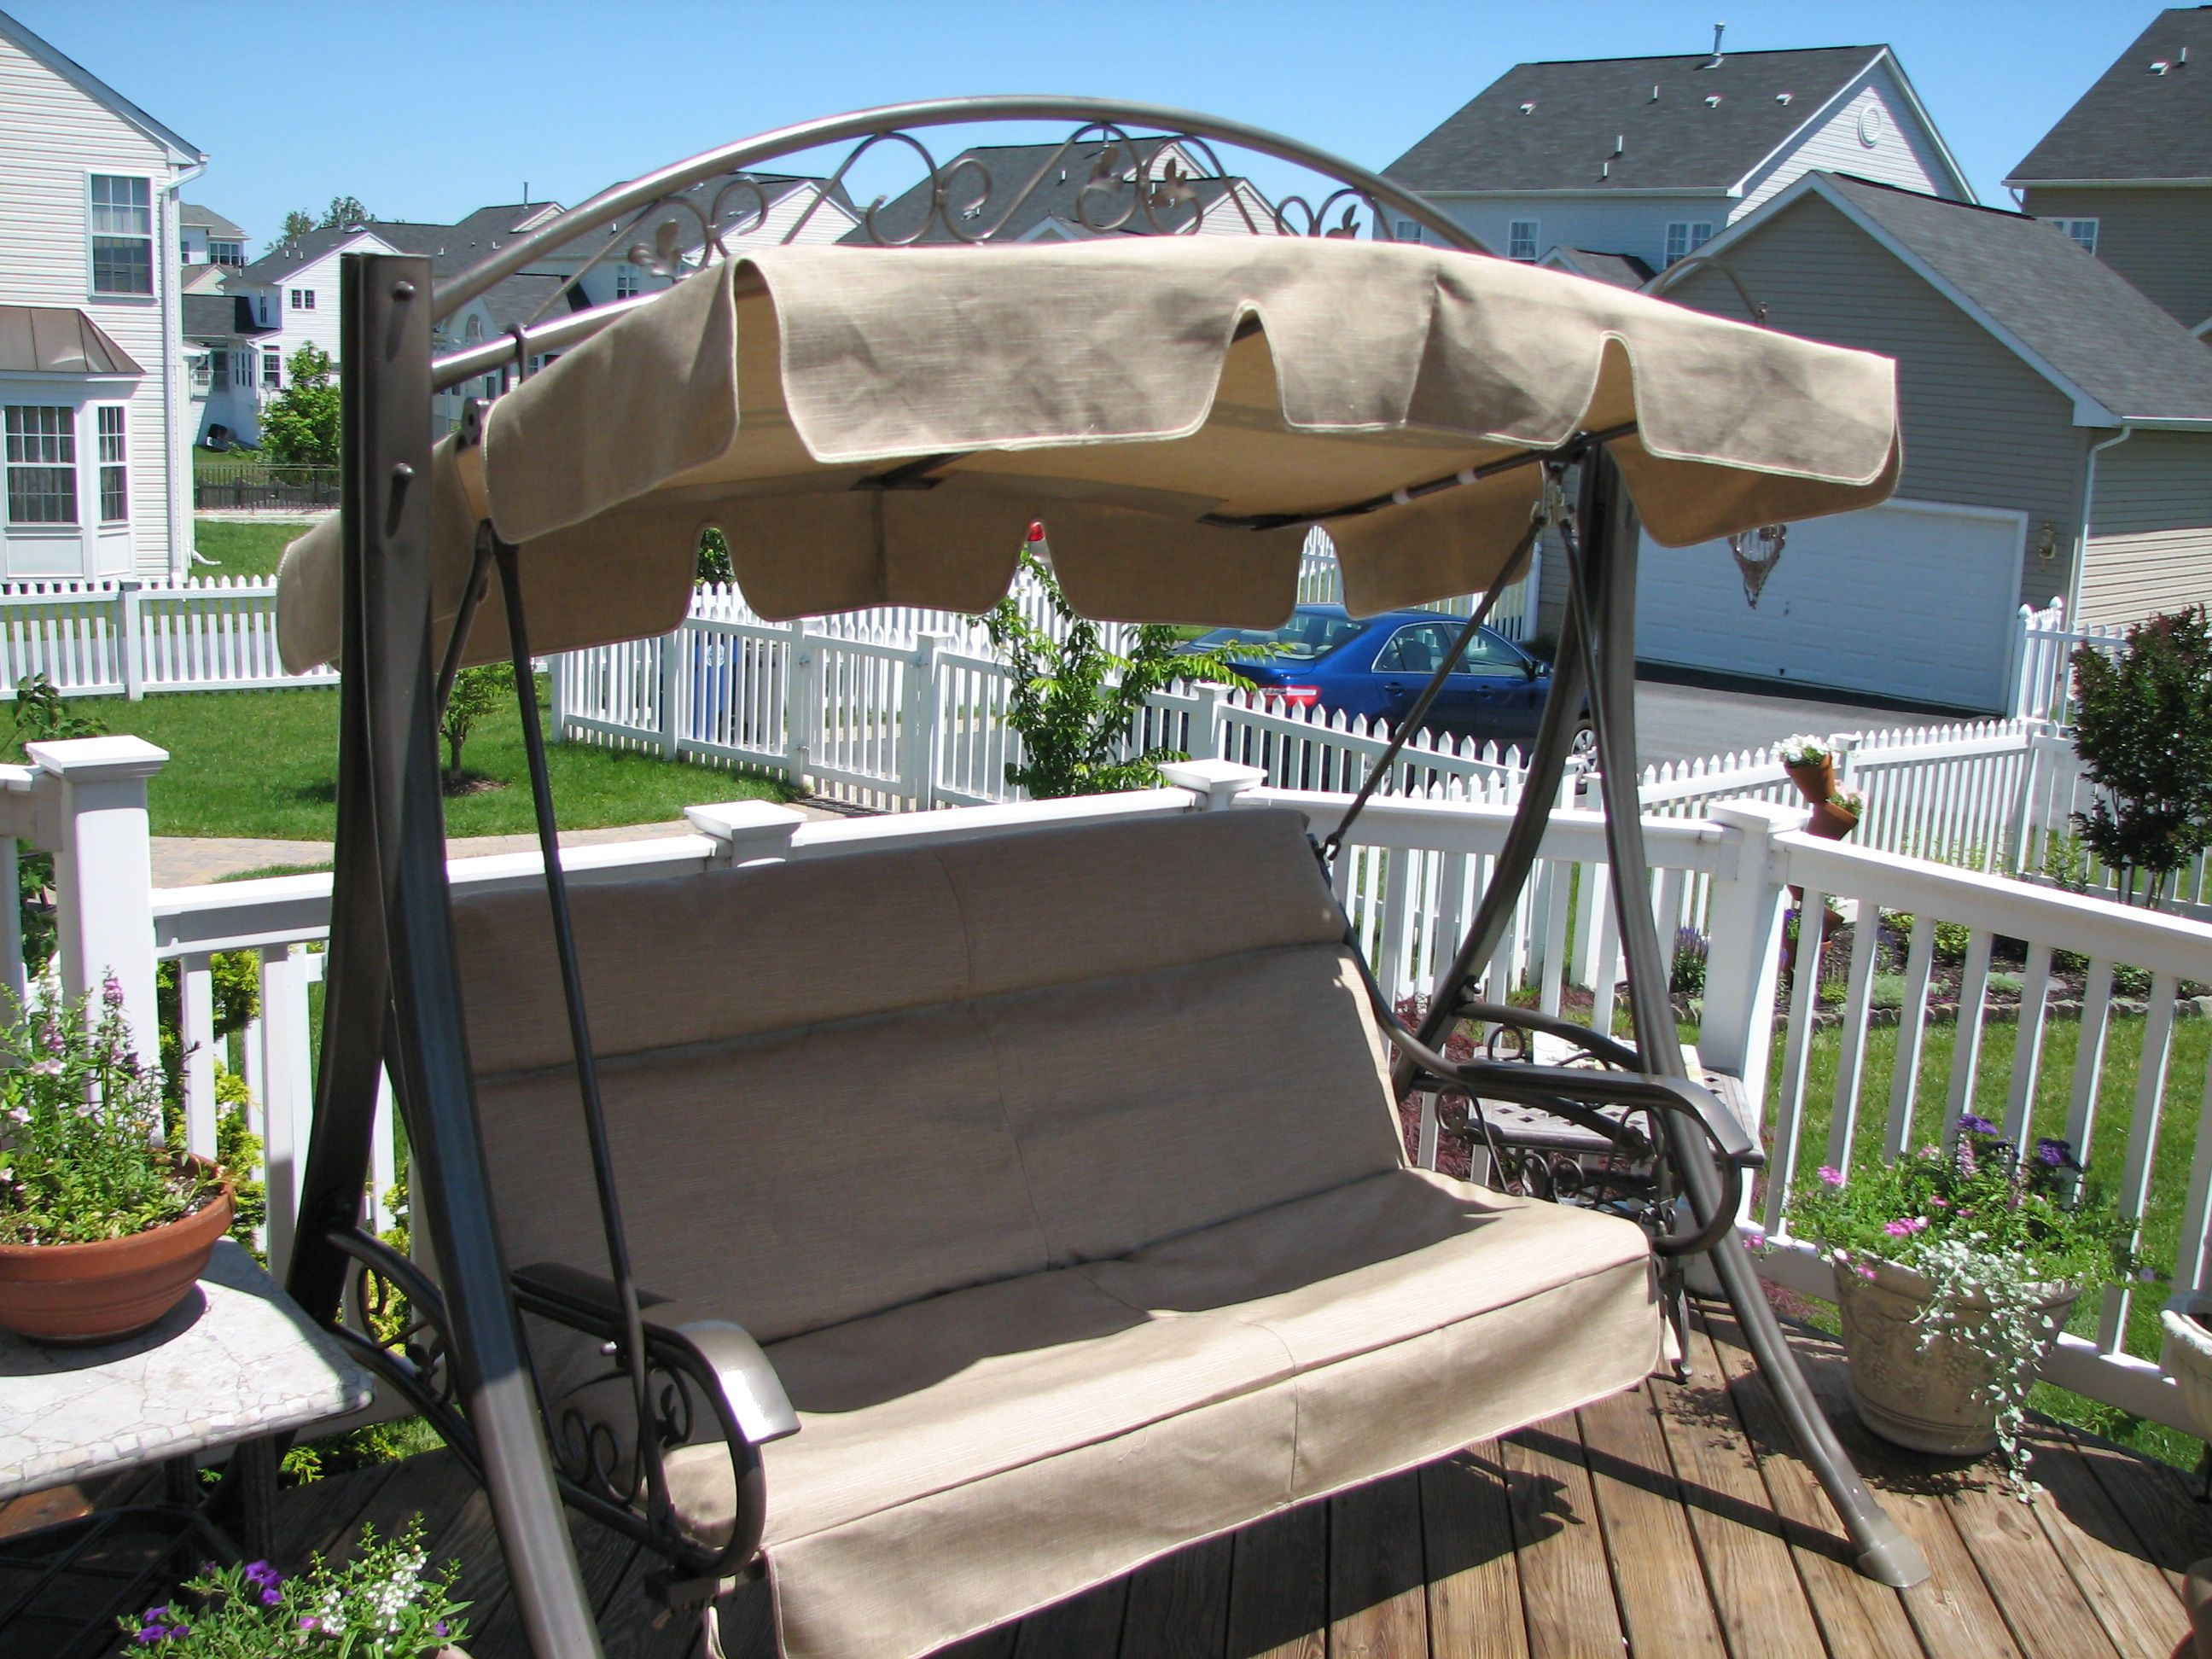 Costco Patio Swing Refurbished - Heather Beige Canopy $165 Cushion Cover $304. Sunbrella fabric : swing seat canopy fabric - memphite.com